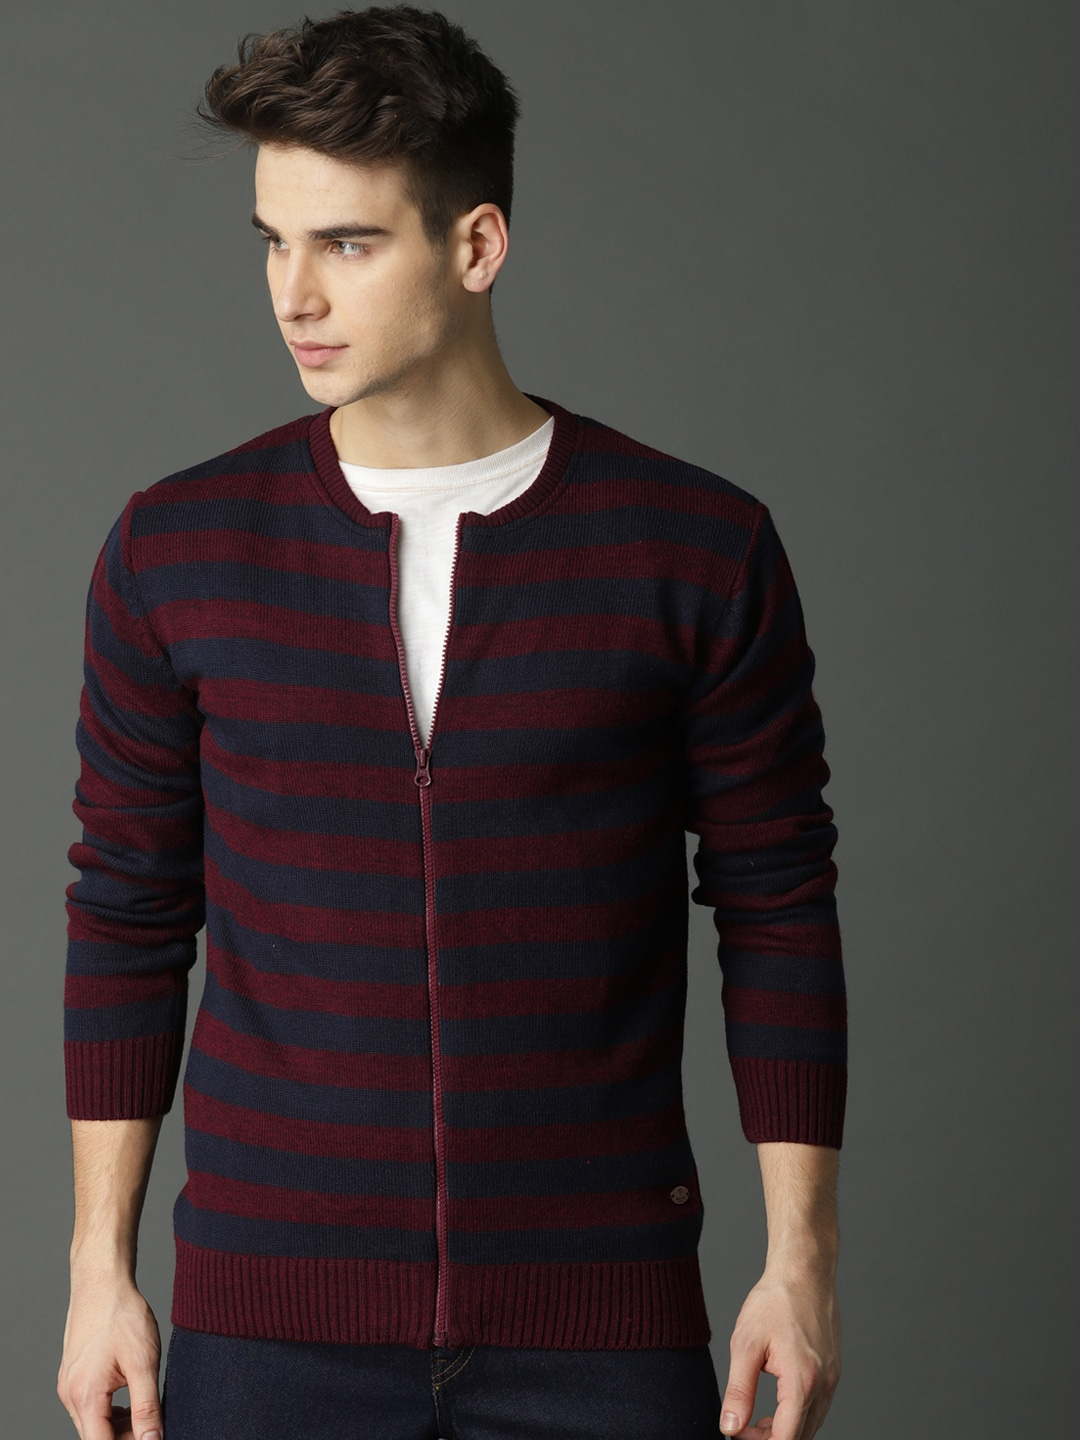 04eecc9a7451 Sweaters for Men - Buy Mens Sweaters